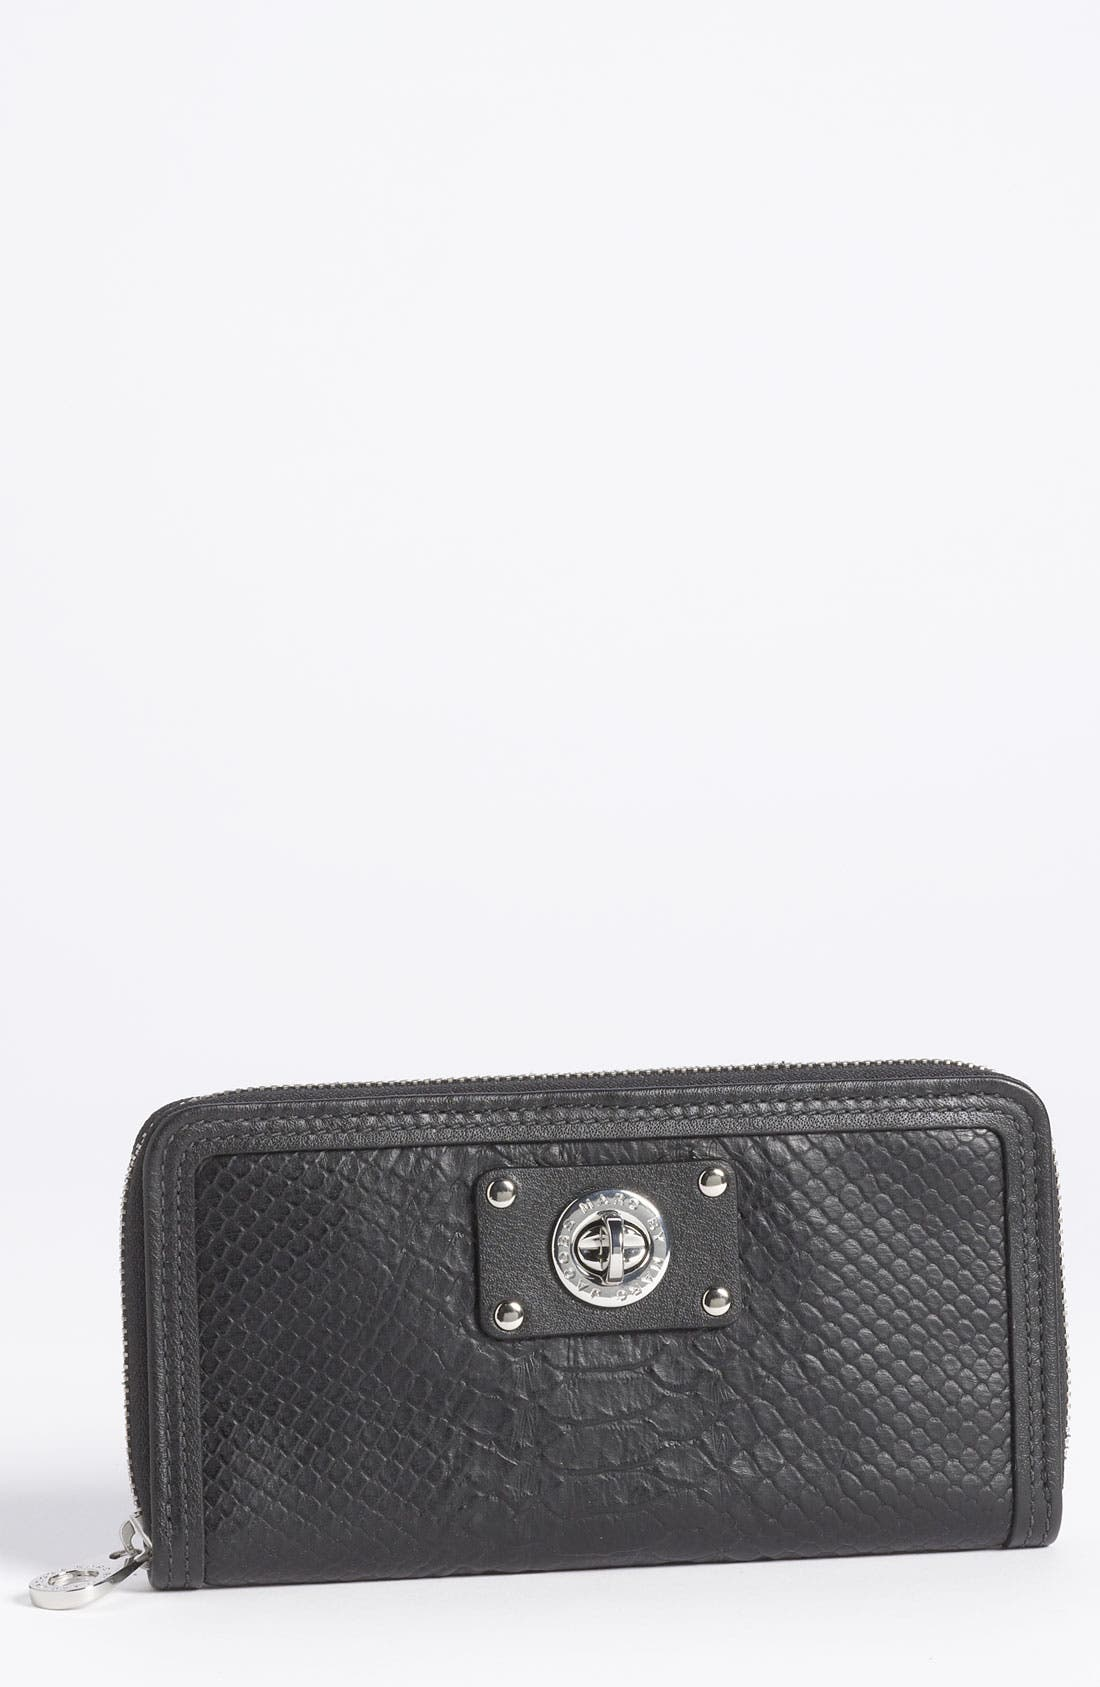 Main Image - MARC BY MARC JACOBS 'Vertical Zippy' Python Embossed Wallet